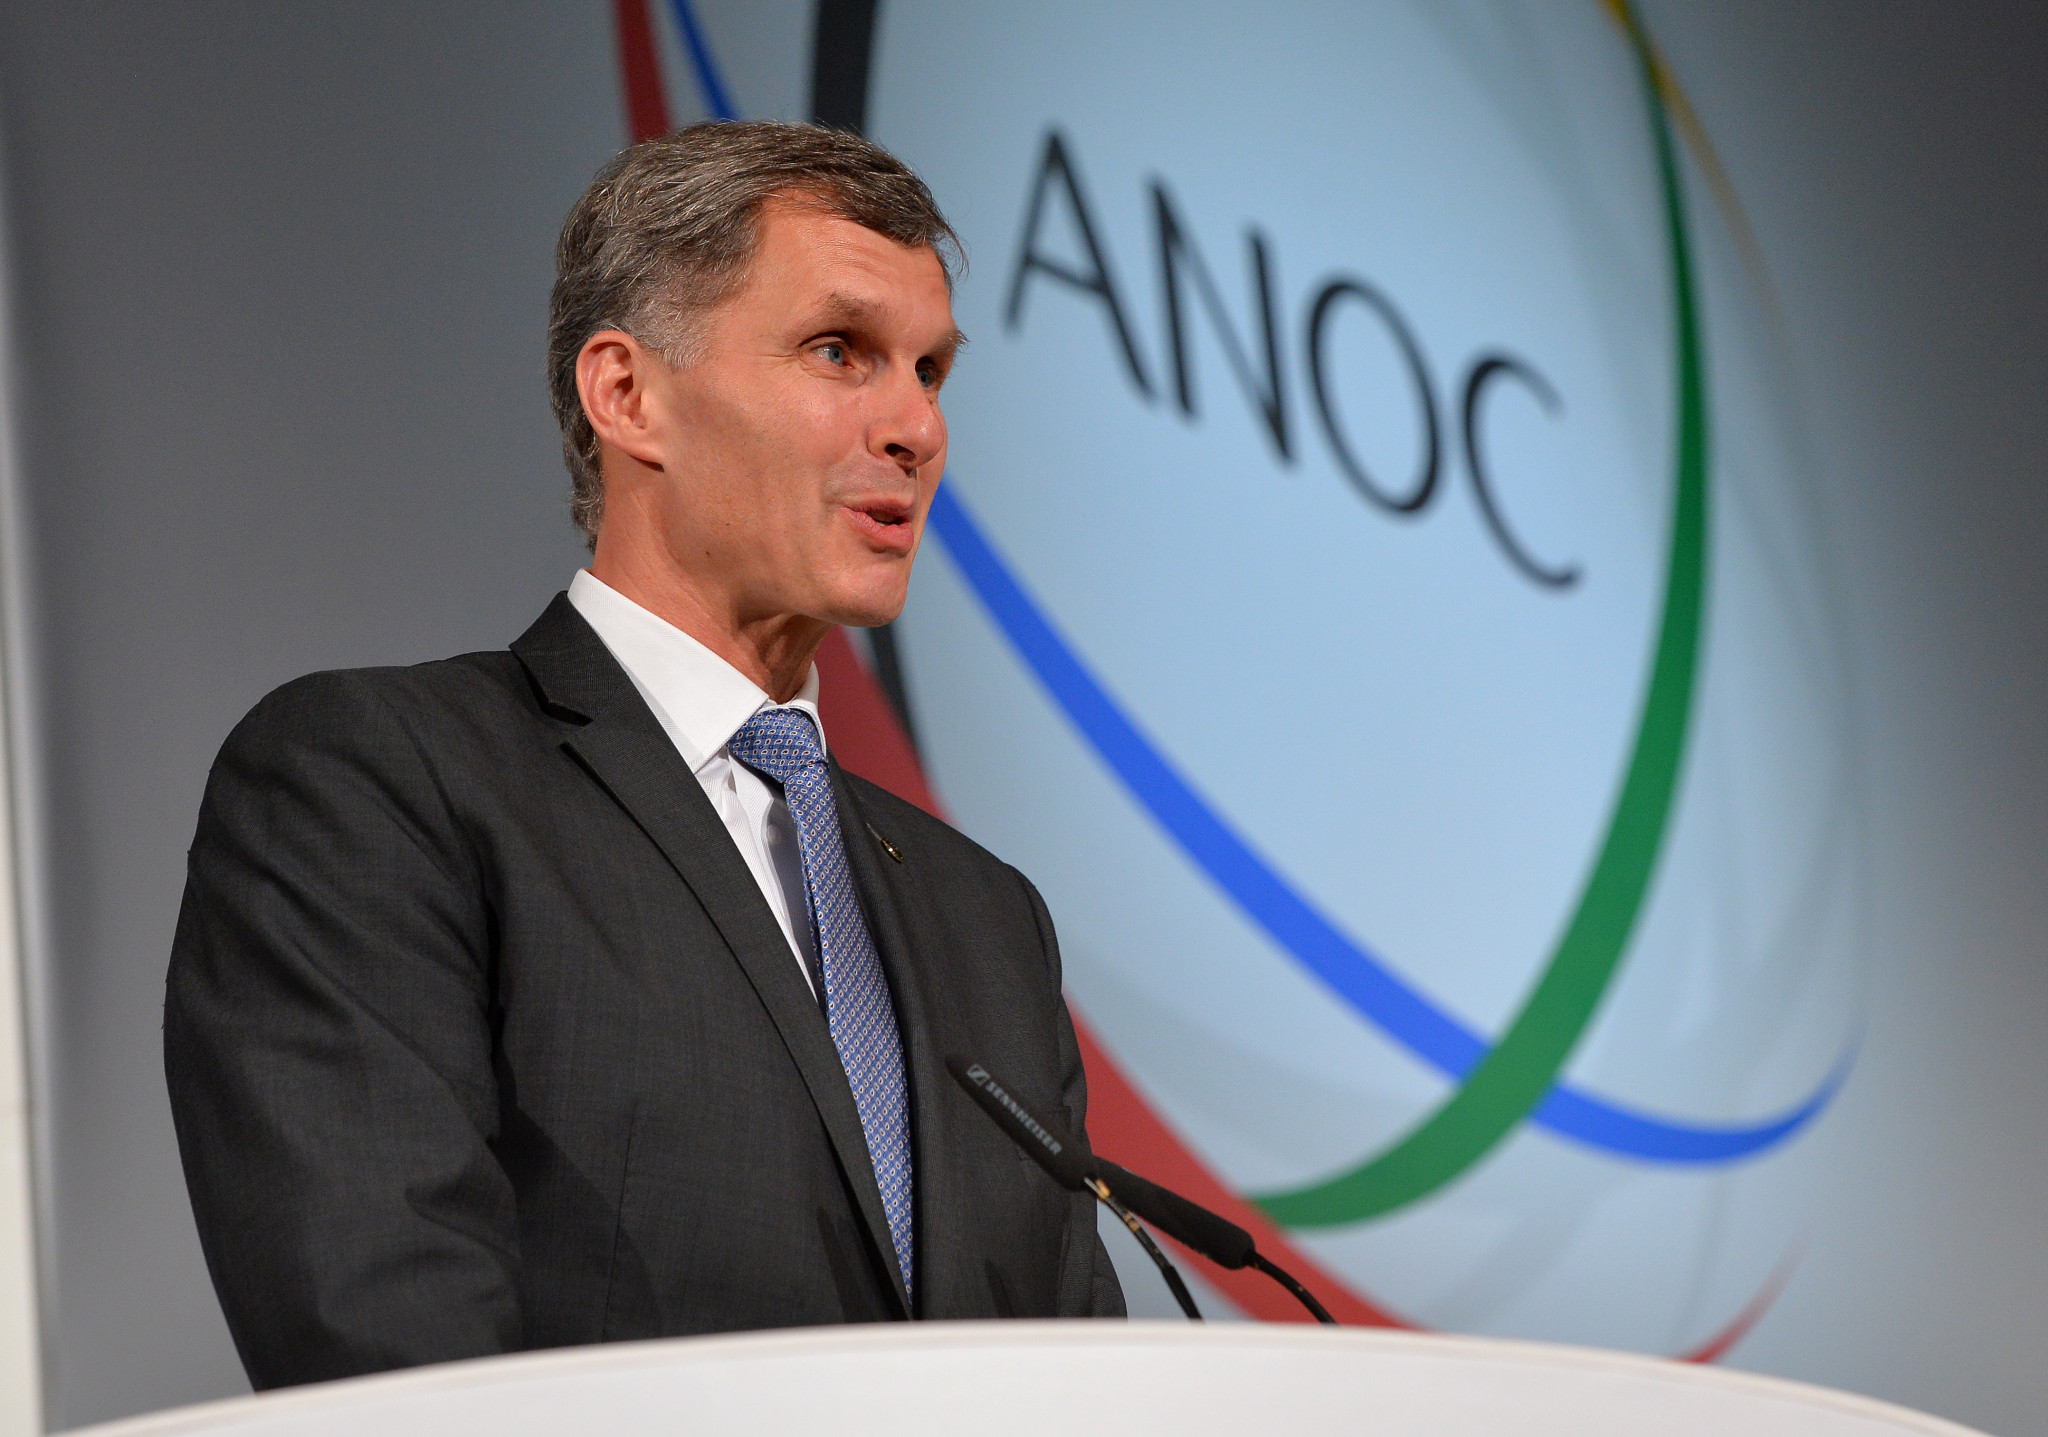 Kejval replaces Takeda as chairman of IOC Marketing Commission as Mitchell becomes Olympic Solidarity head